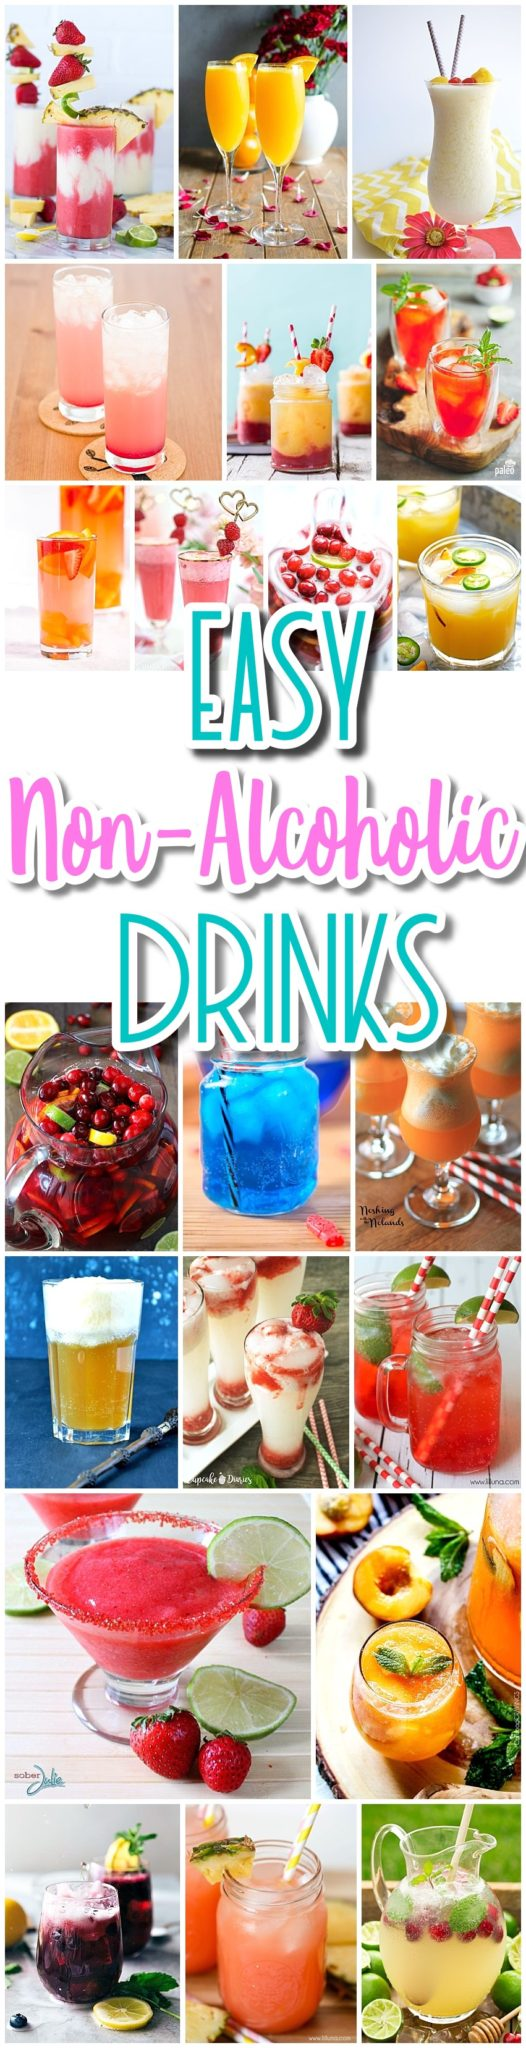 The BEST Easy Non-Alcoholic Drinks Recipes - Creative Mocktails and Family Friendly, Alcohol-Free, Big Batch Party Beverages for a Crowd! - Dreaming in DIY